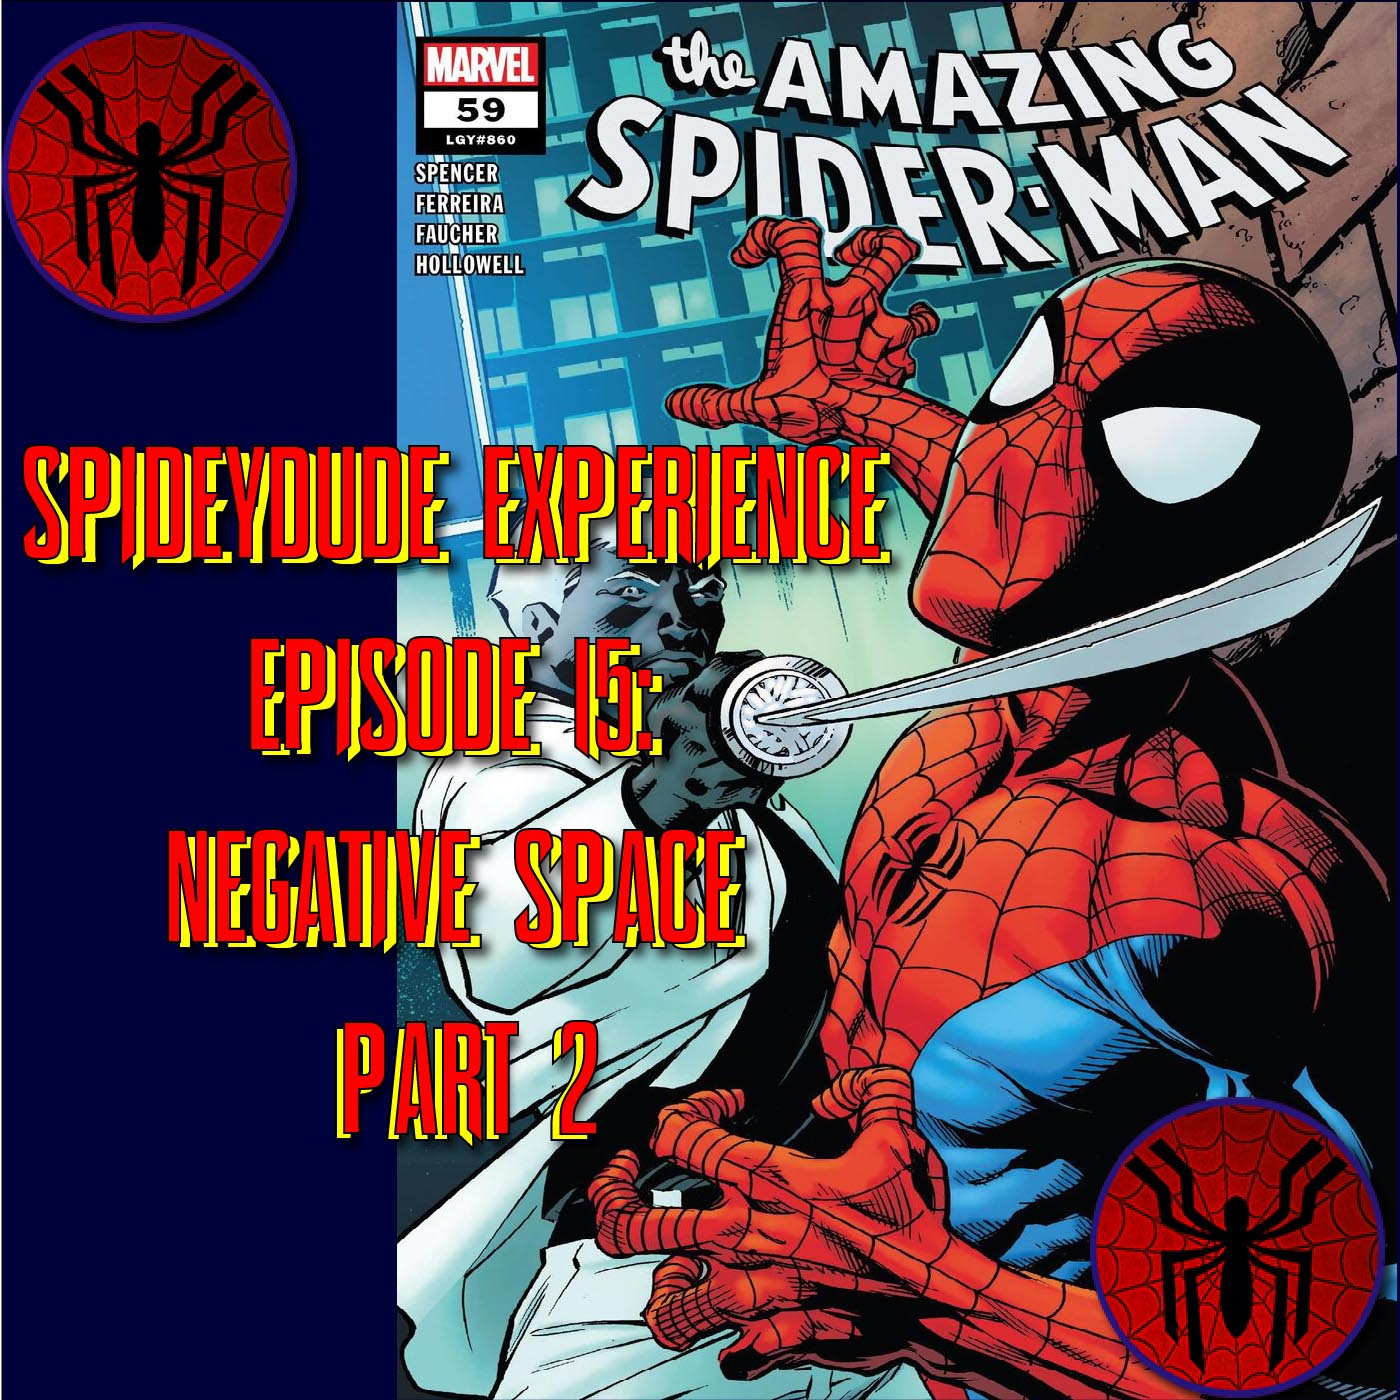 Spideydude Experience Episode 15: Negative Space Part 2 (ASM 860)